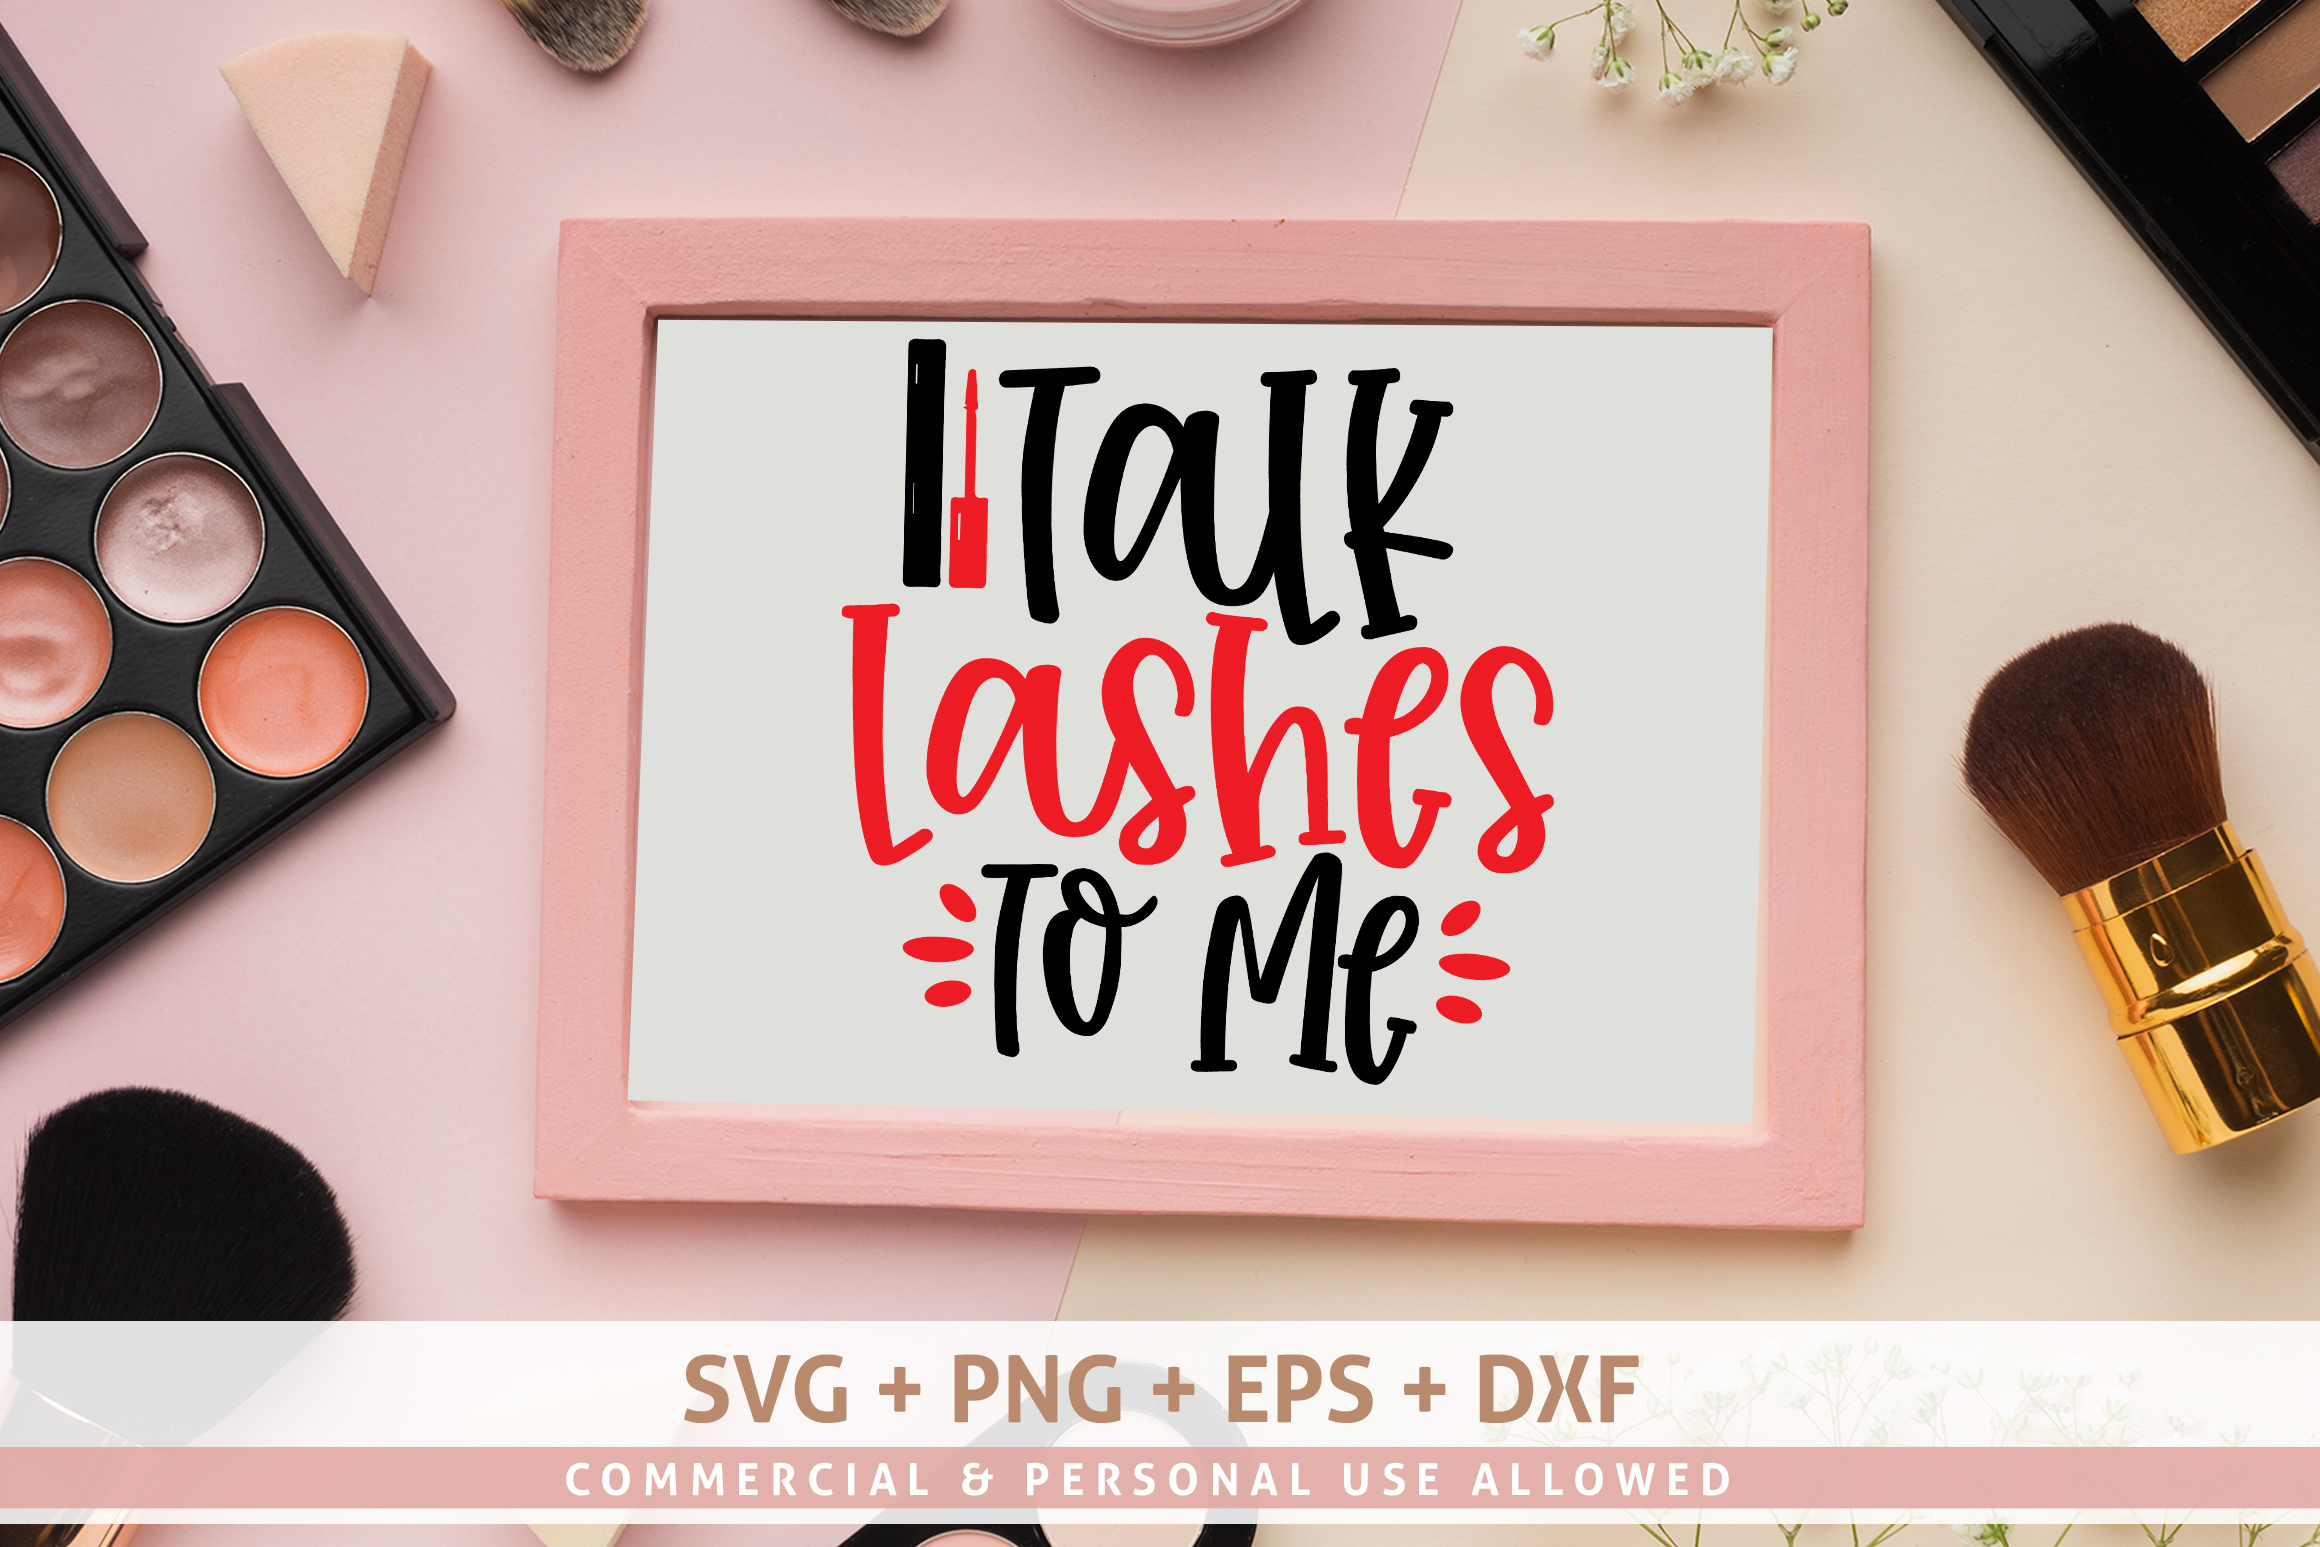 Talk Lashes To Me SVG example image 1